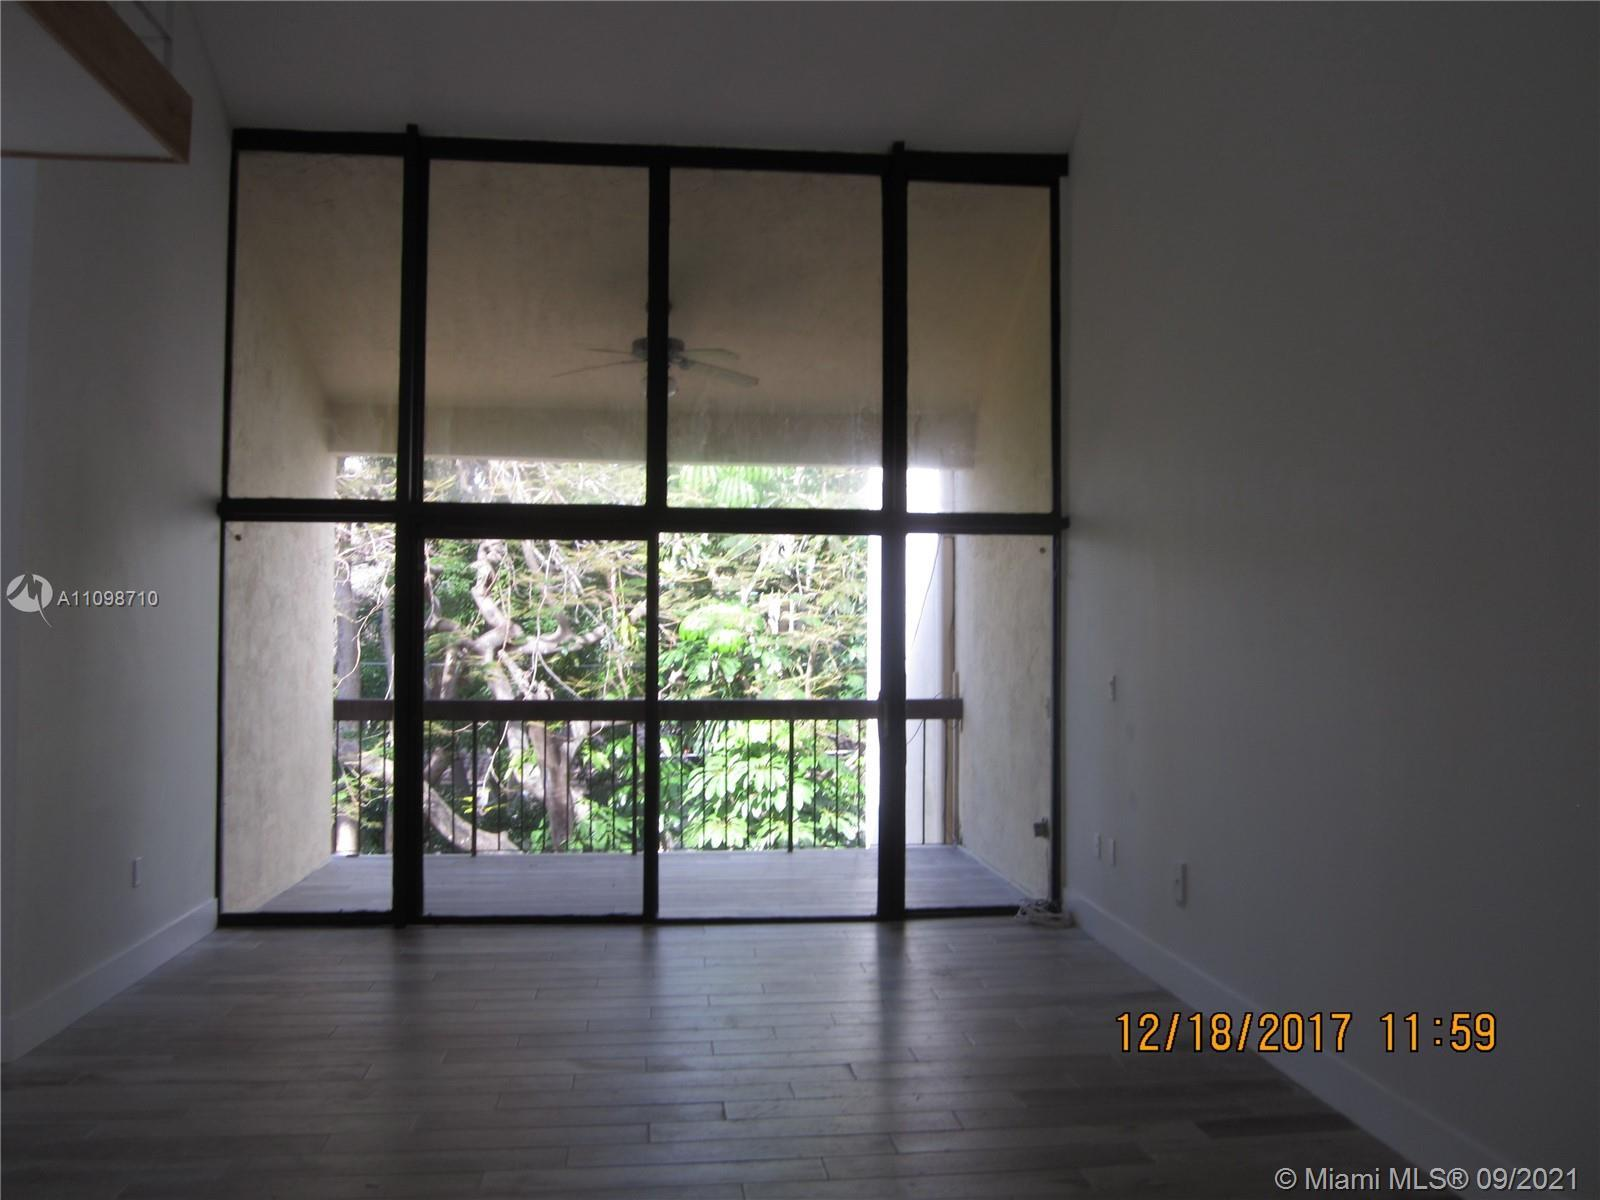 Superb Location, minutes from major highways, downtown Miami and all Brickell has to offer. Instantl